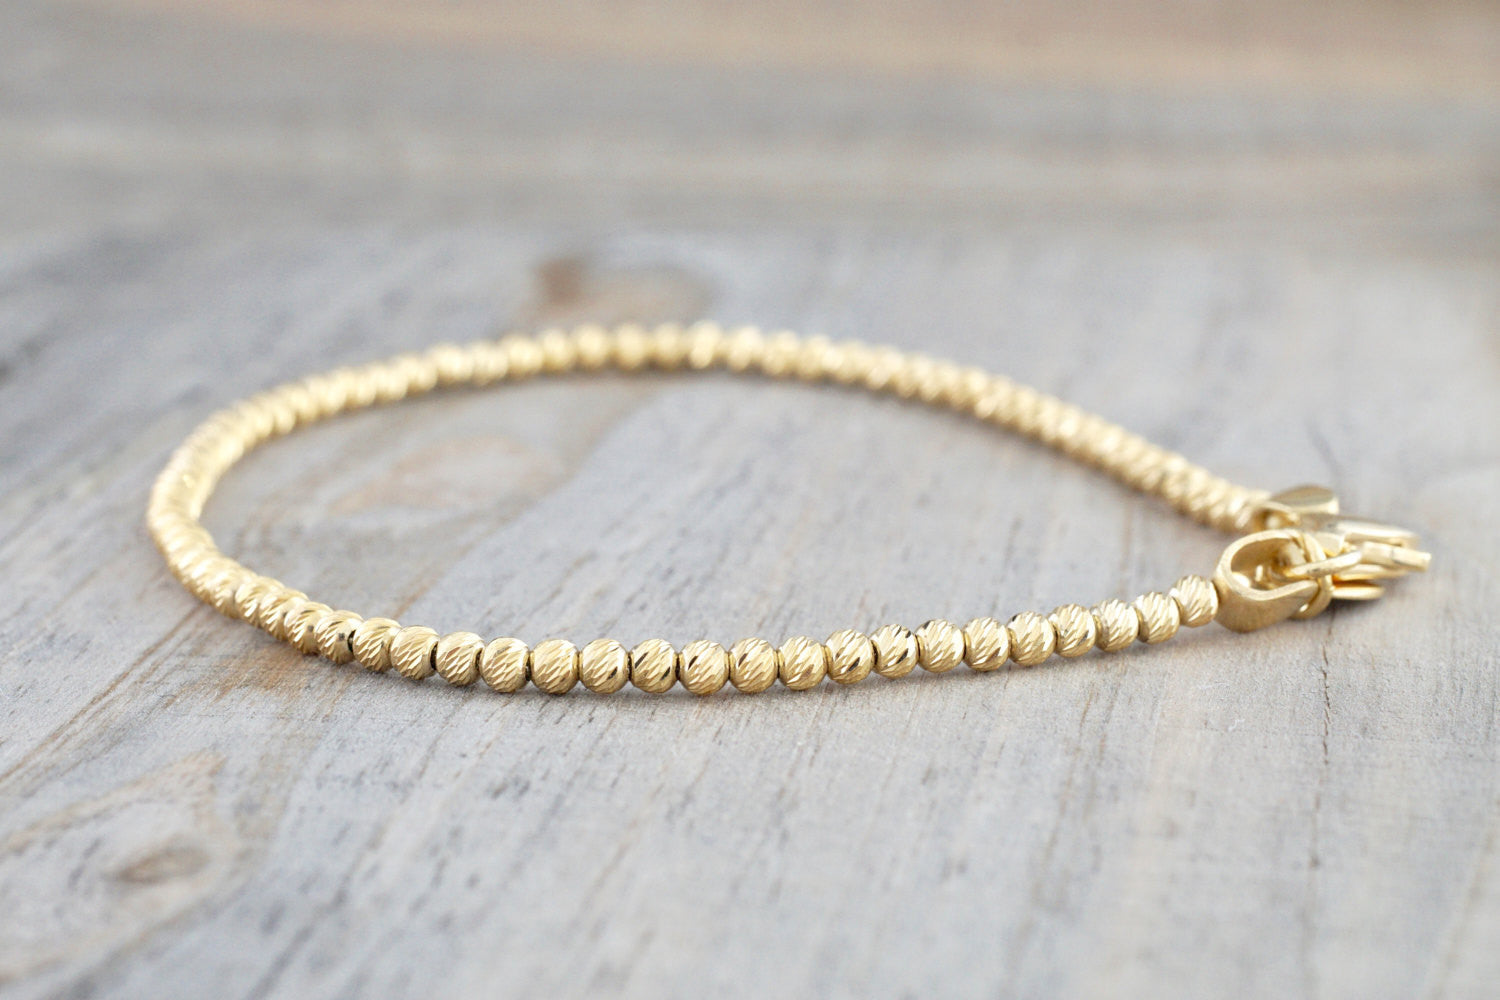 14k Yellow Gold Bead Ball Diamond Cut Bracelet Dainty Love Gift Fashion